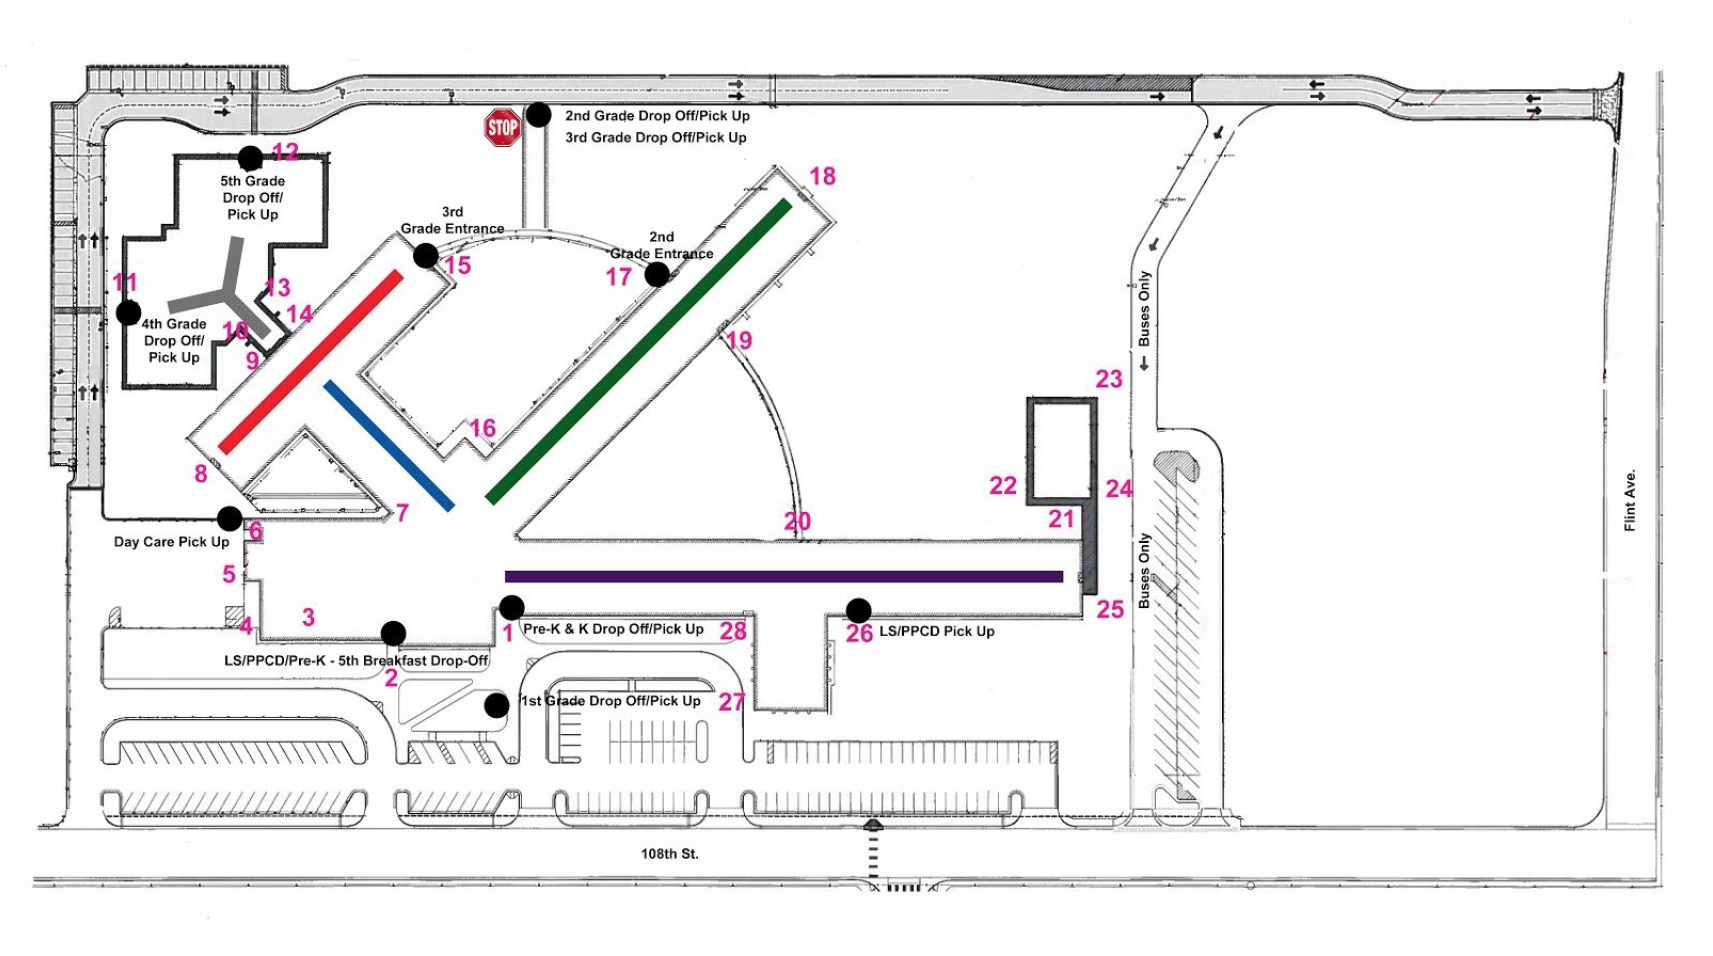 North Arrival And Dismissal Map